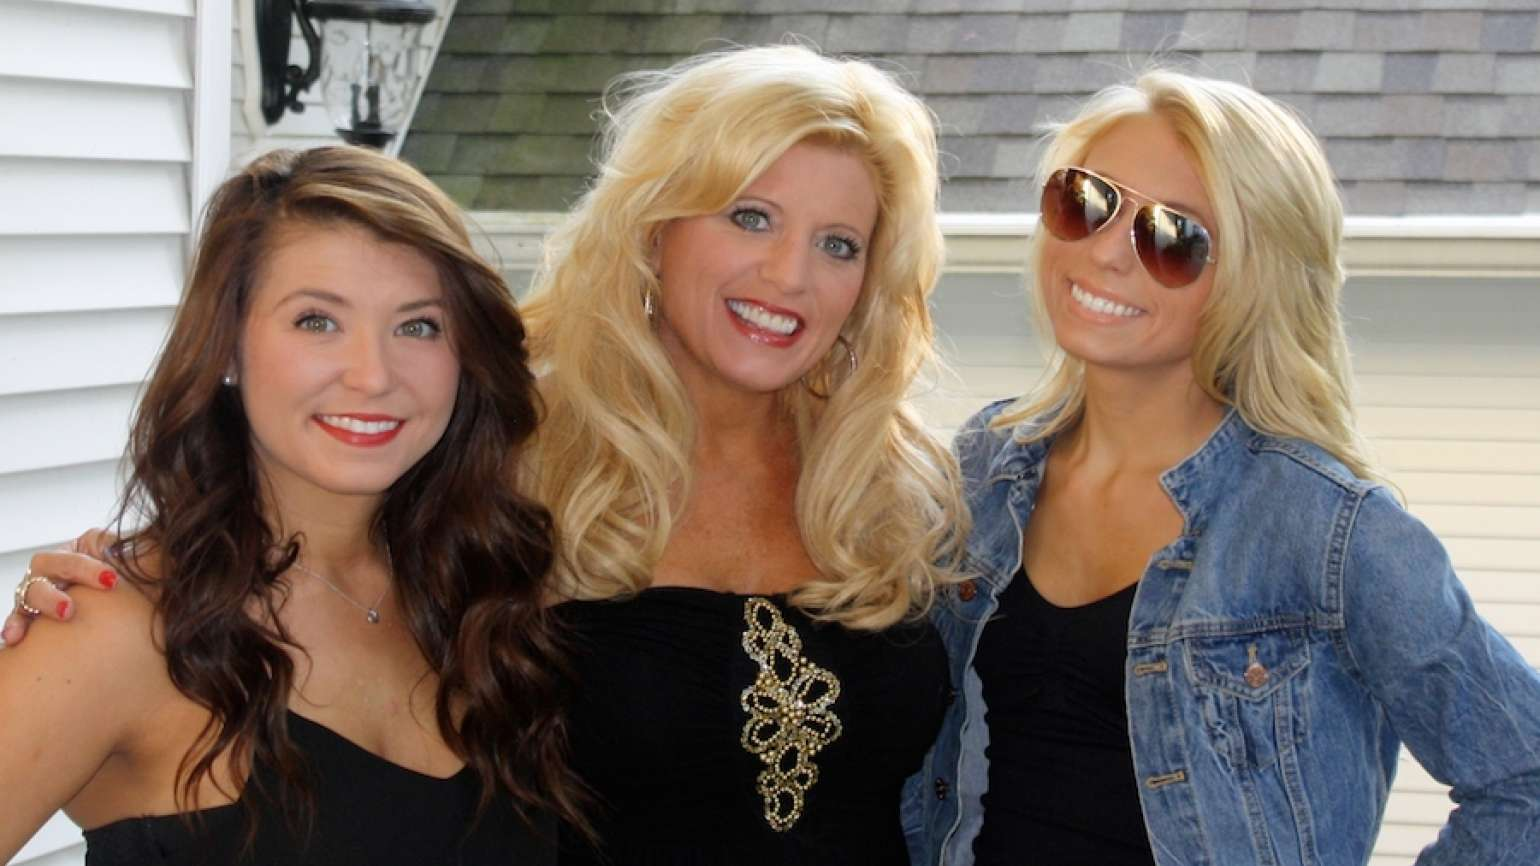 Michelle Medlock Adams with her daughters Abby (left) and Ally (right).